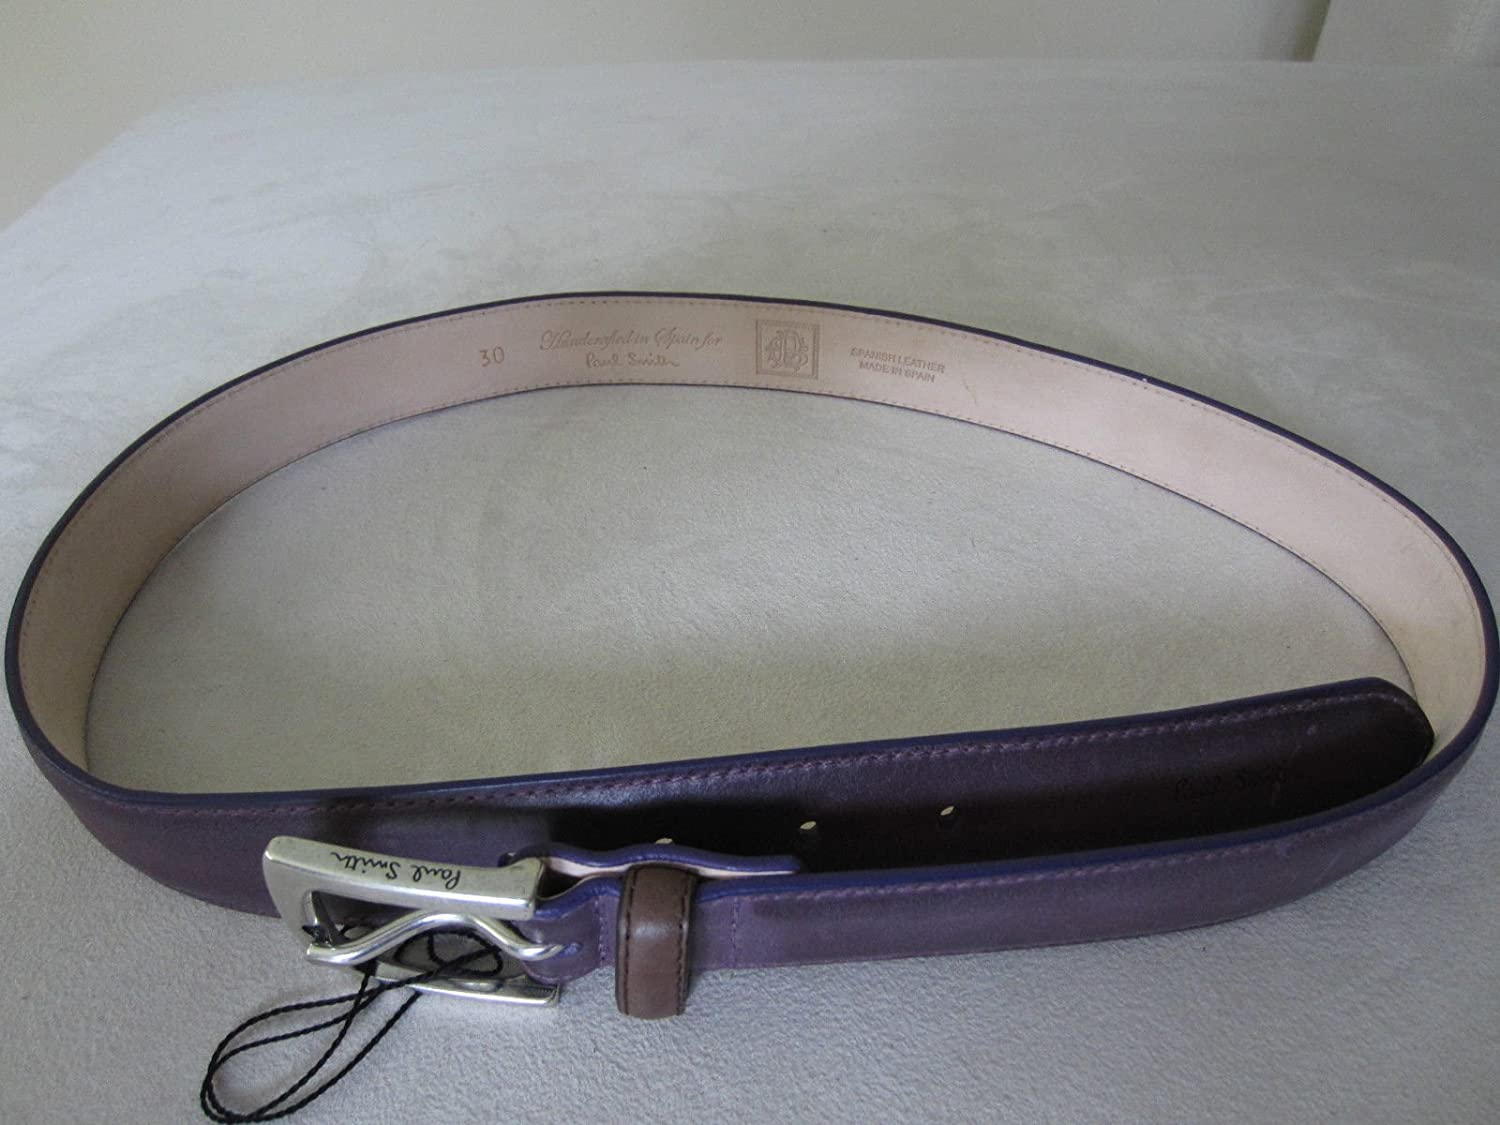 "Paul Smith Designer ""Handcrafted In Spain for Paul Smith Designer"" Purple Belt - Size 32 B015WEEW52"